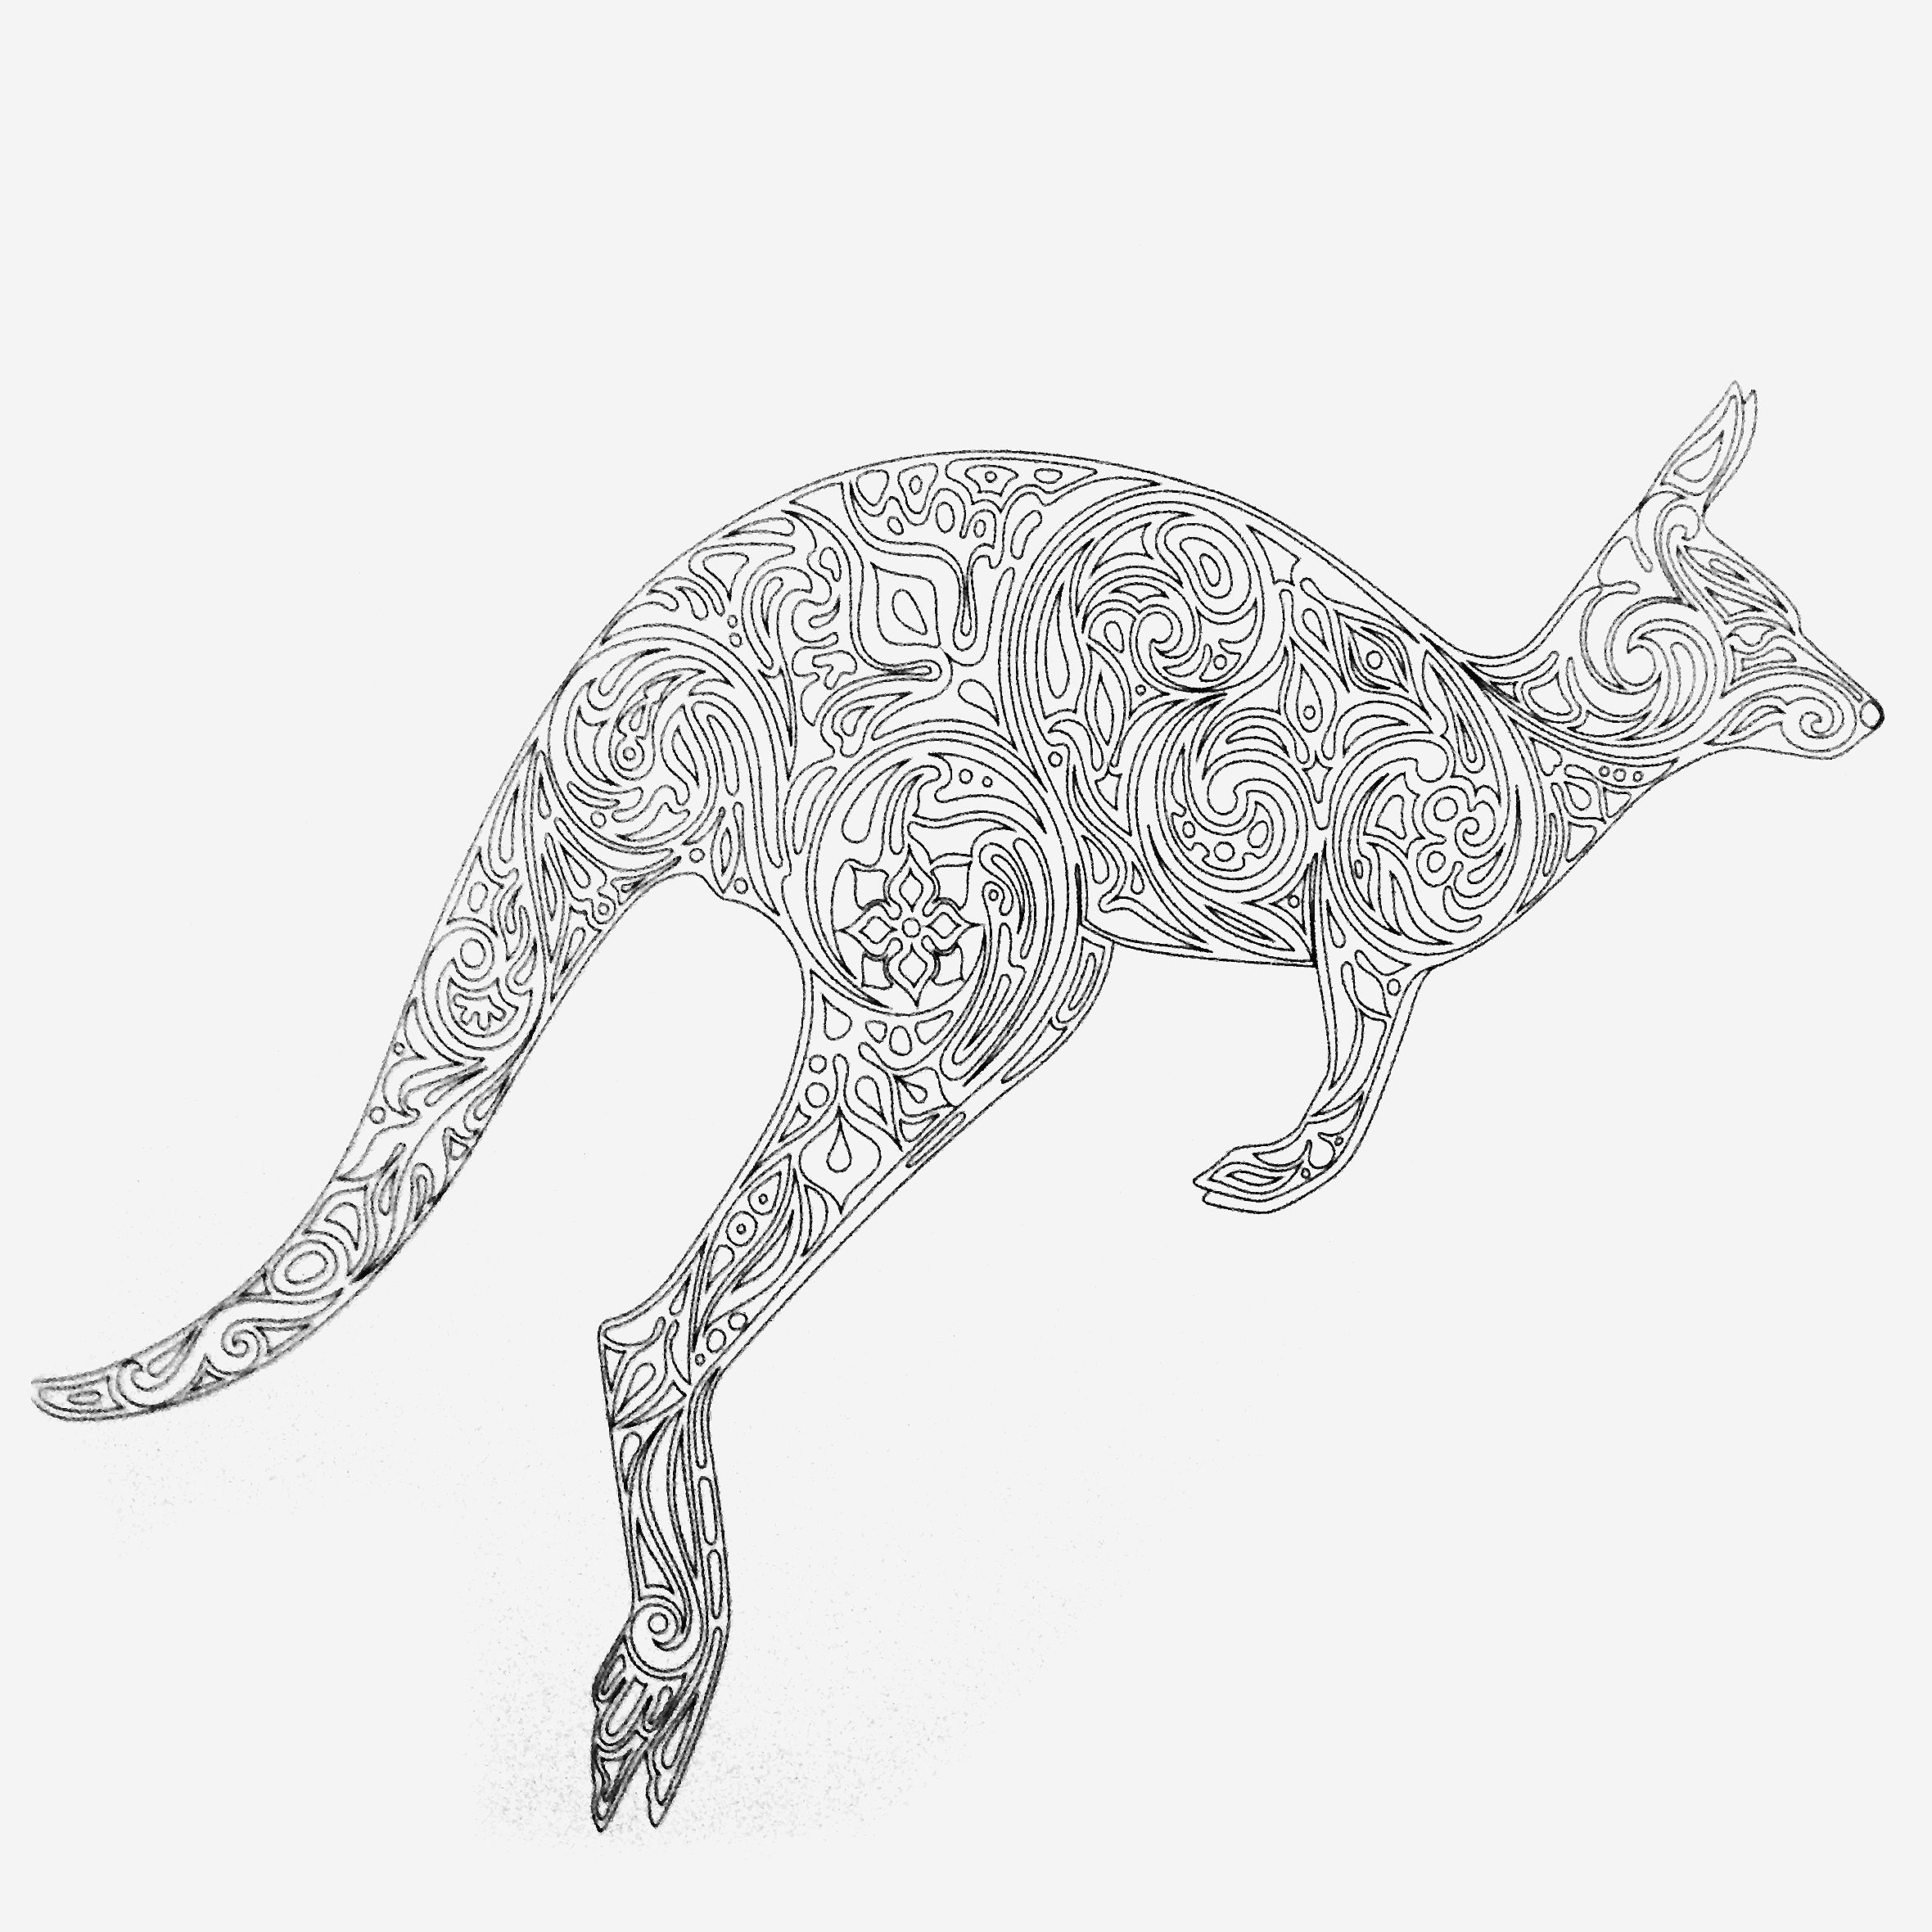 colors of nature colouring book kangaroo coloring pages